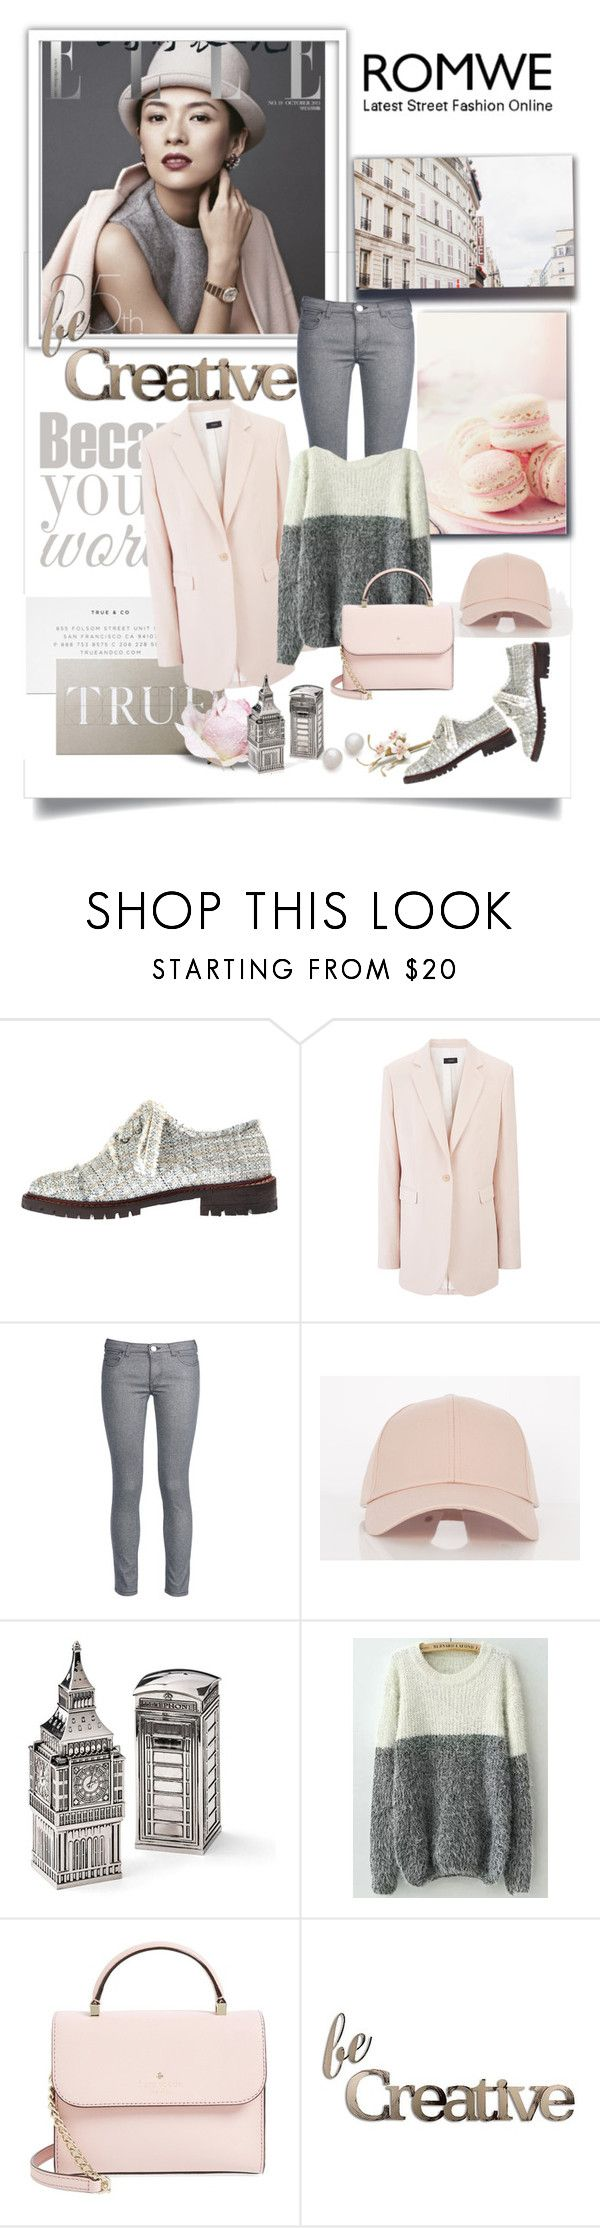 """Bez naslova #567"" by gracijelaj ❤ liked on Polyvore featuring Anouki, Joseph, George J. Love, Gump's, Kate Spade, Letter2Word and Kenneth Jay Lane"